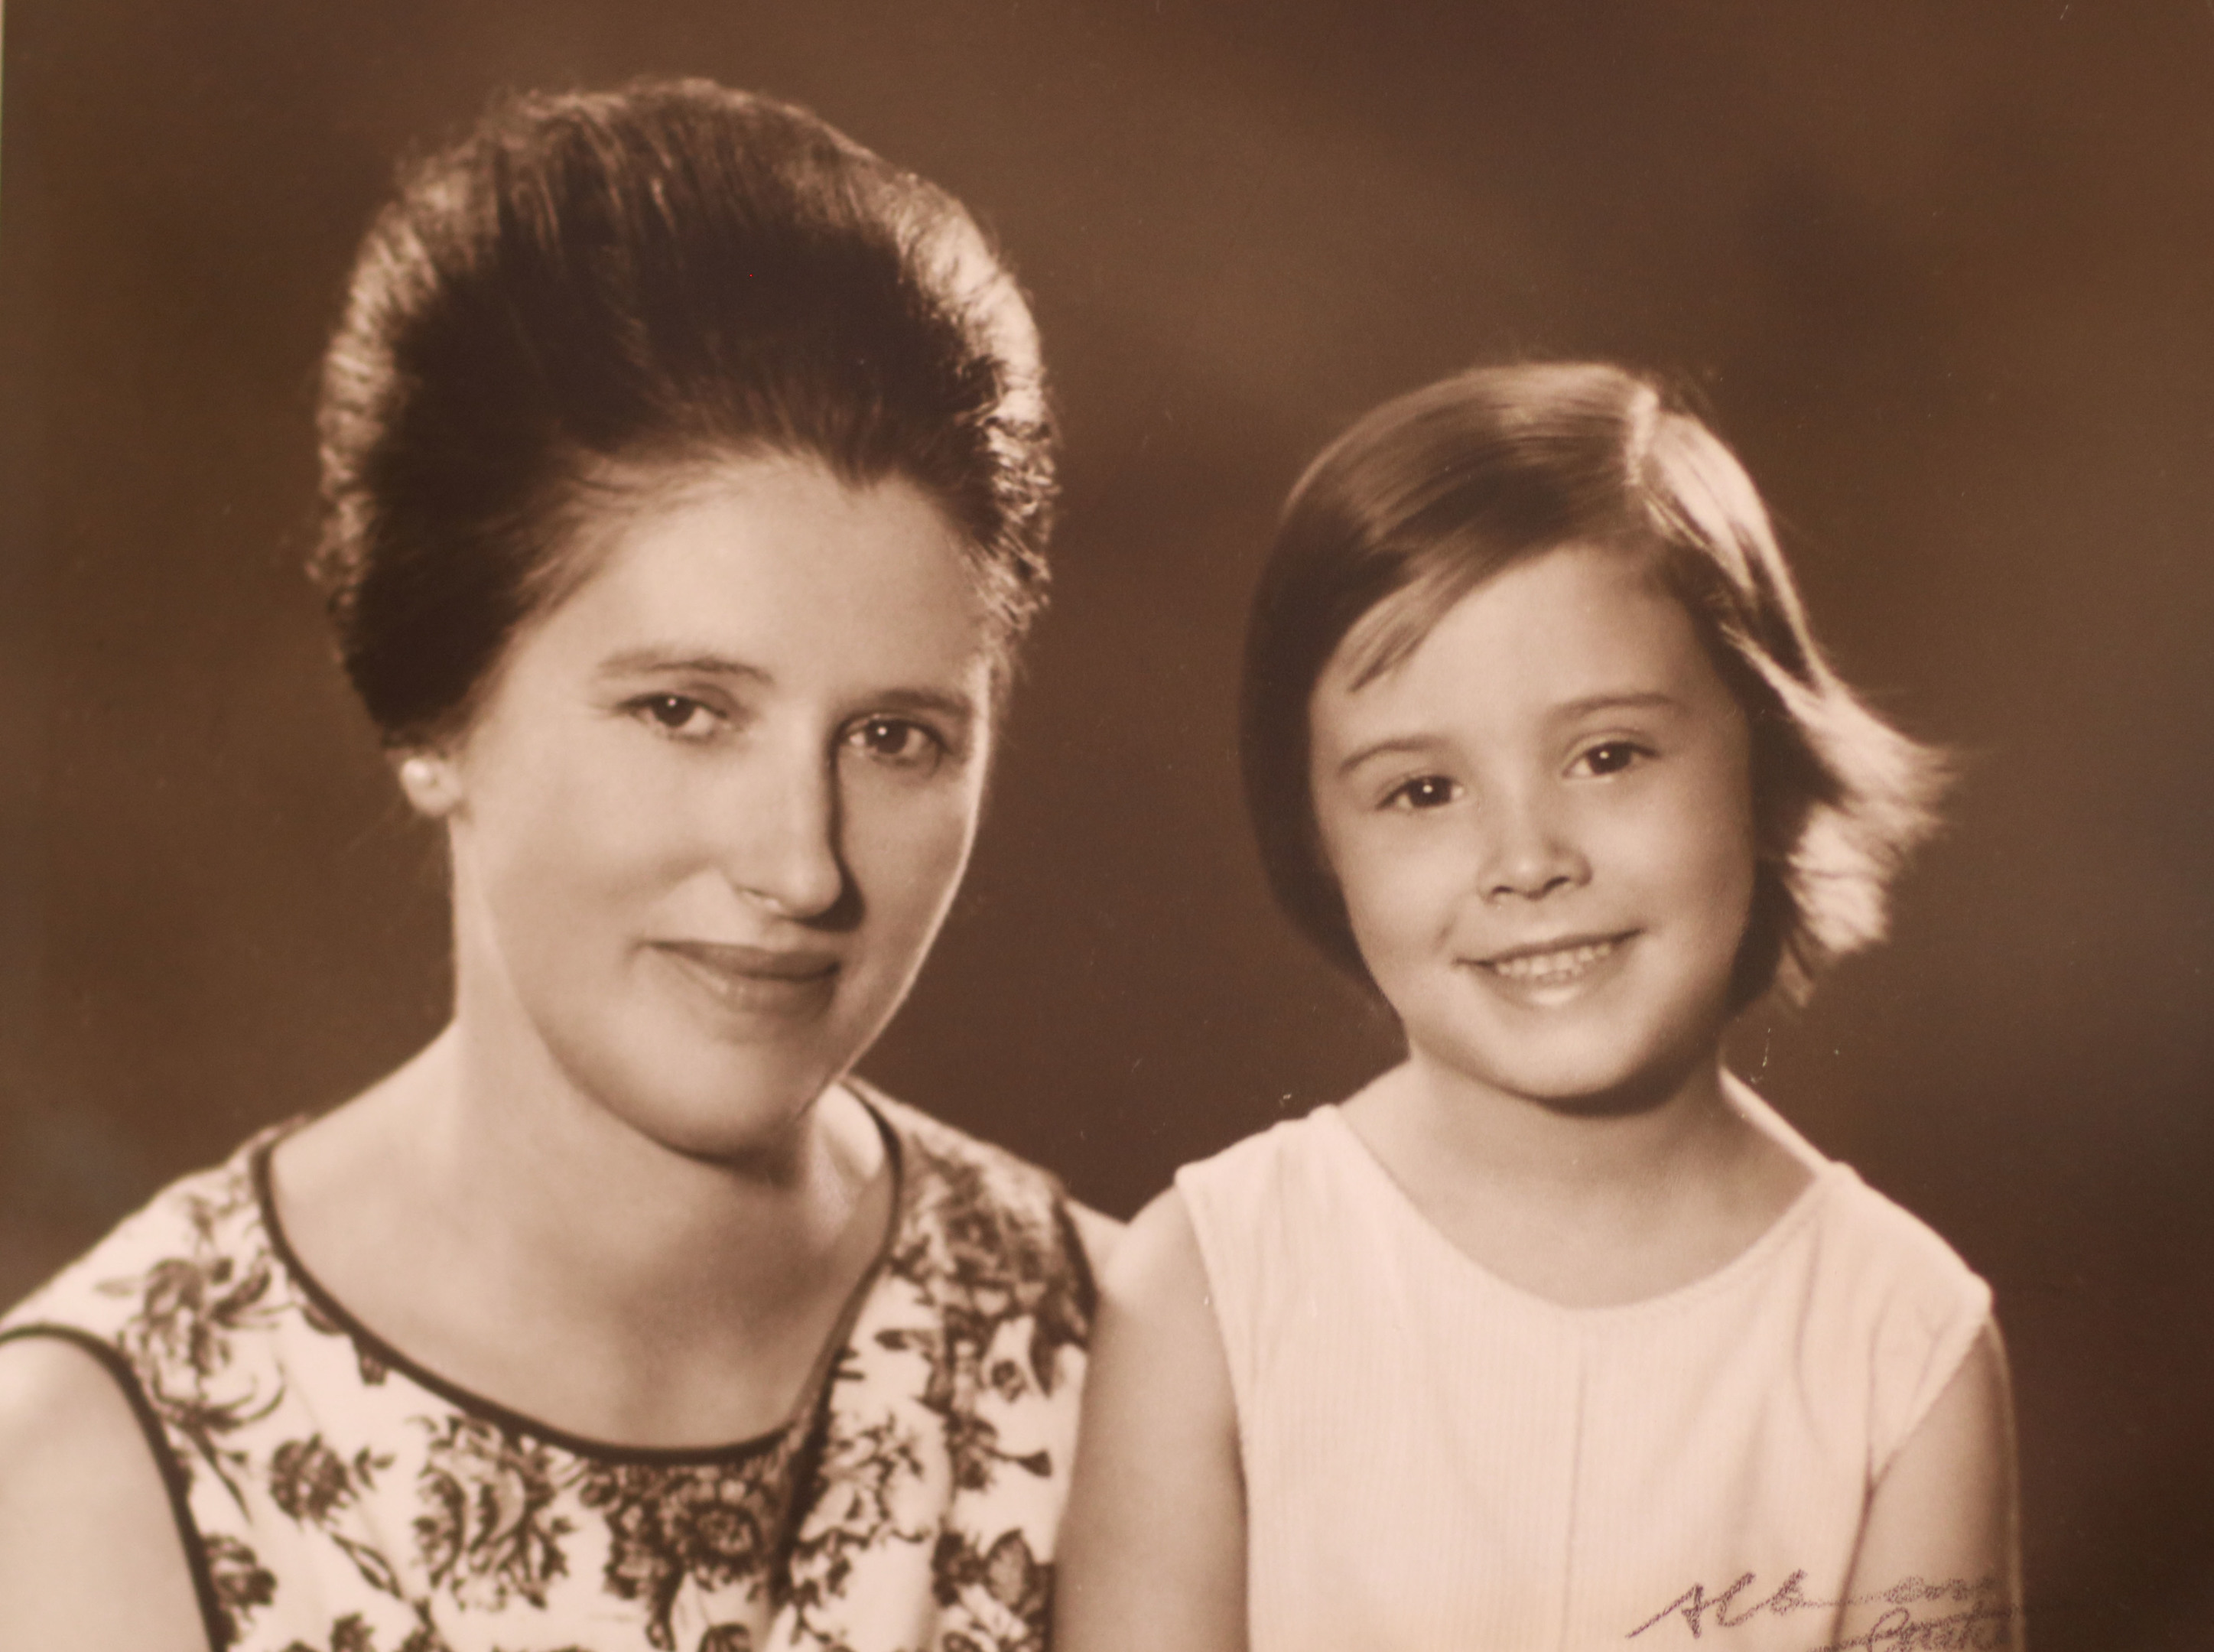 Arabella Weir as a young girl with her mum, Alison Walker who died from cancer.